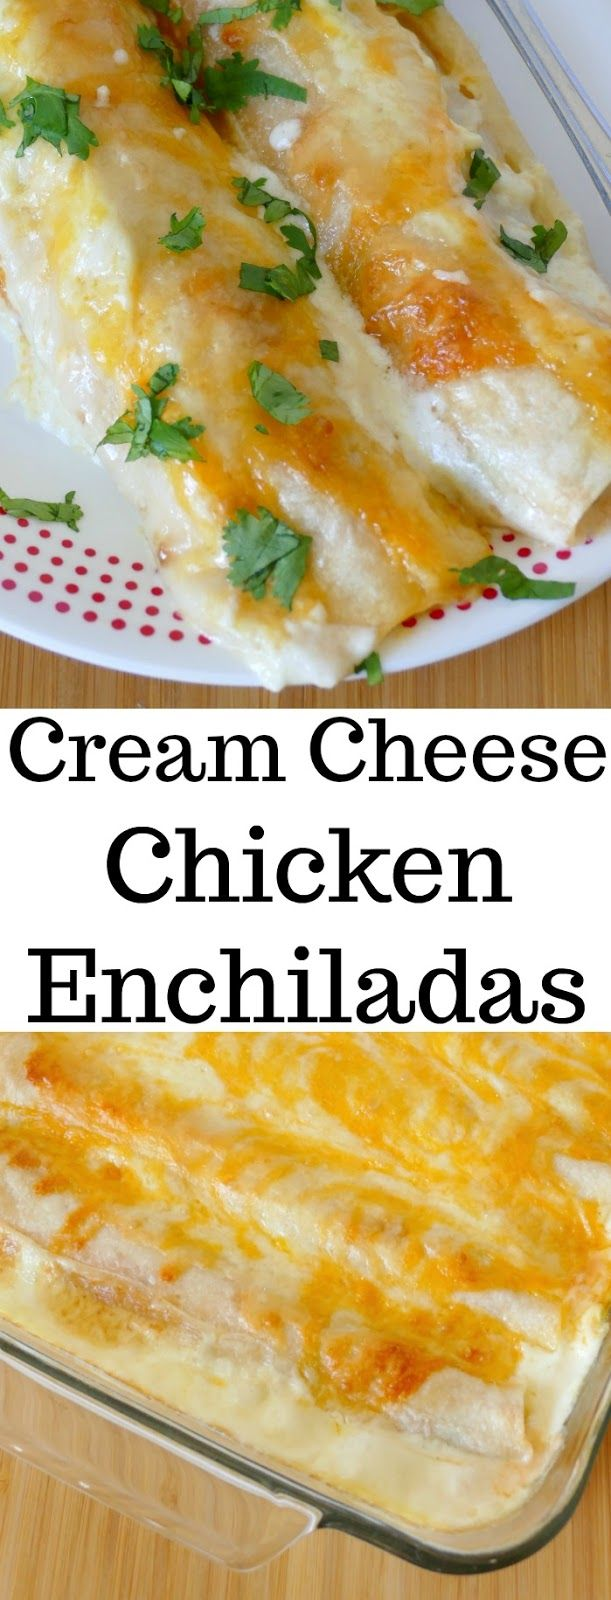 Frischkäse Huhn Enchiladas Rezept  – Yummy Recipes